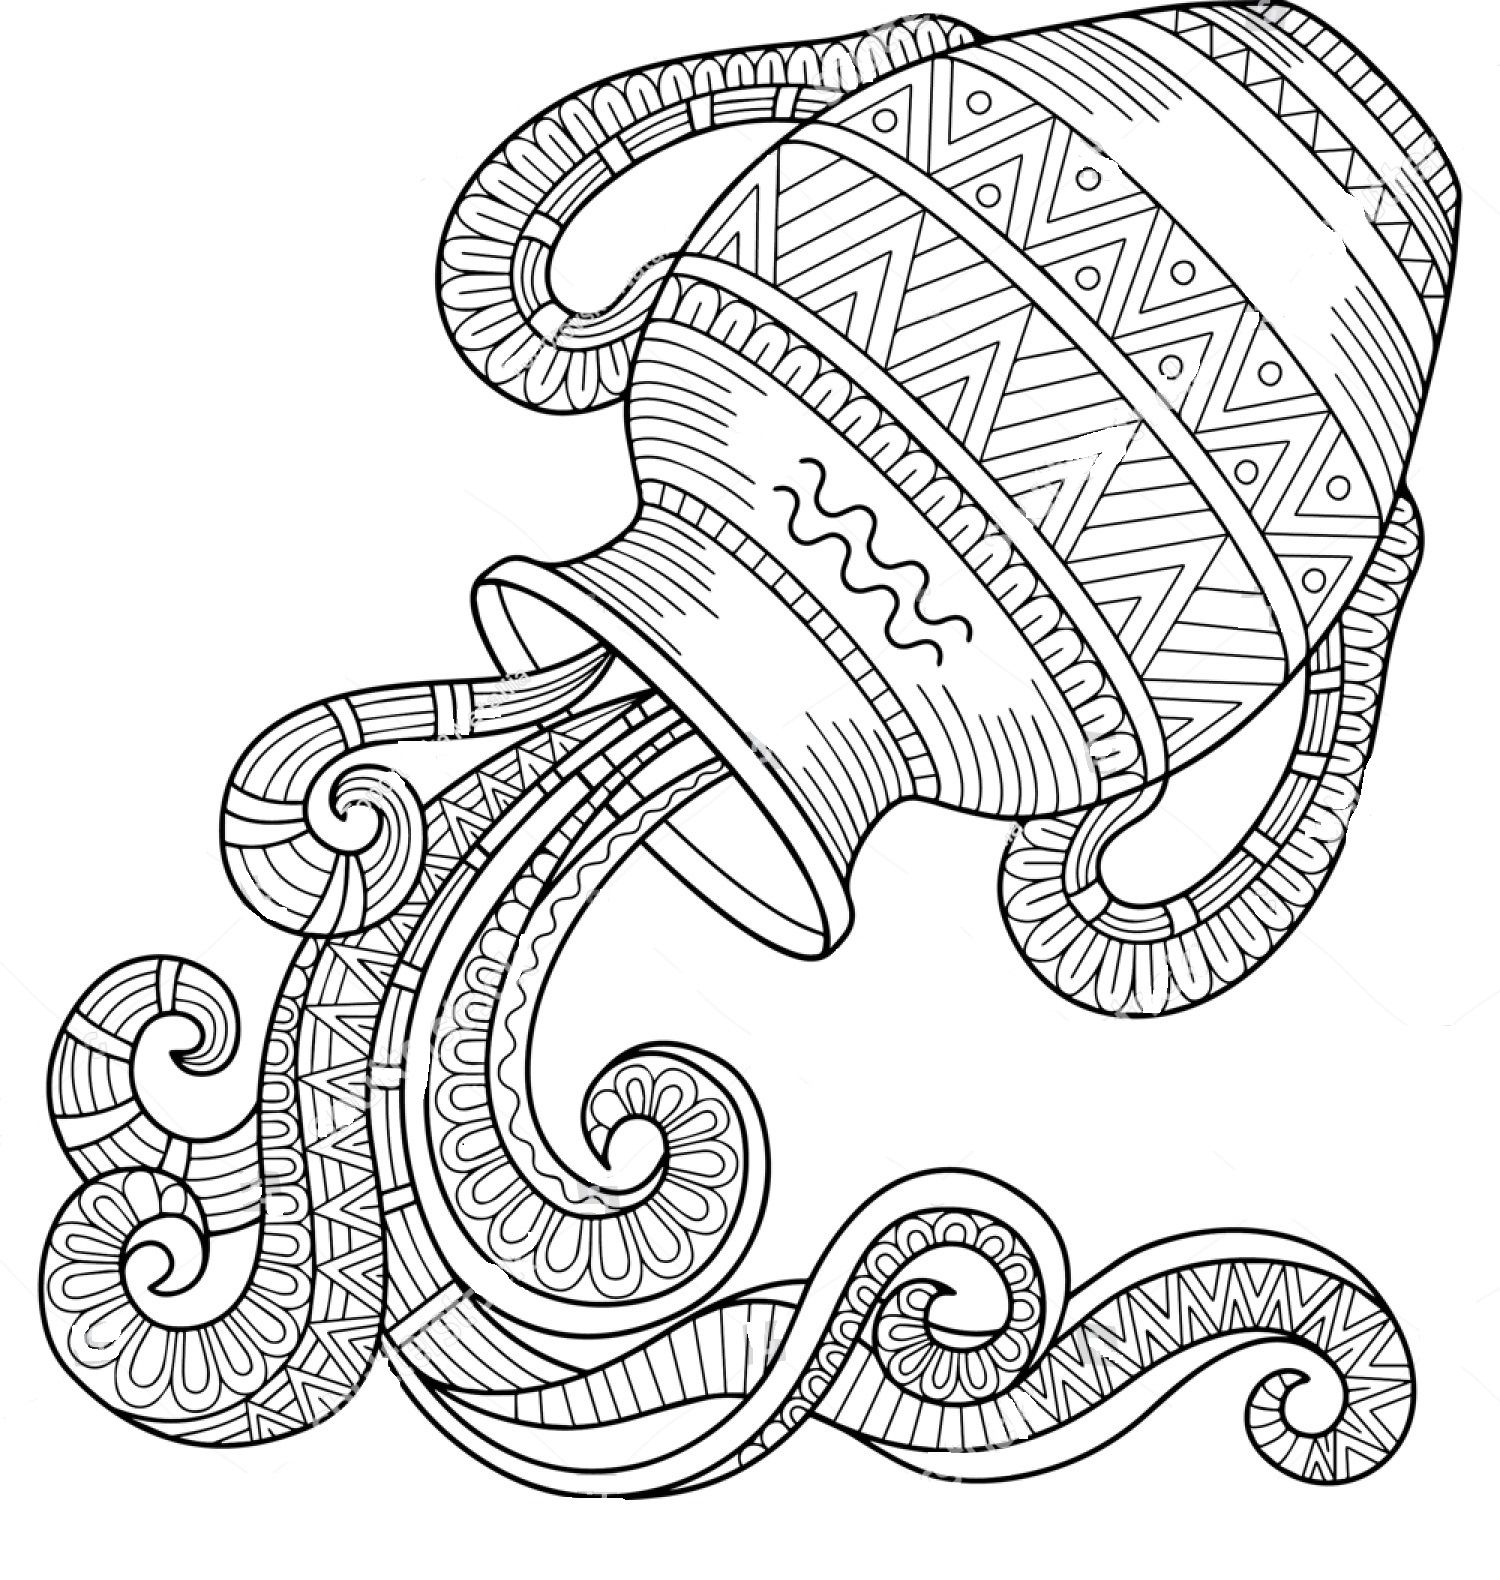 1500x1580 Aquarius Horoscope Zentangle Coloring Page Zentangle Coloring